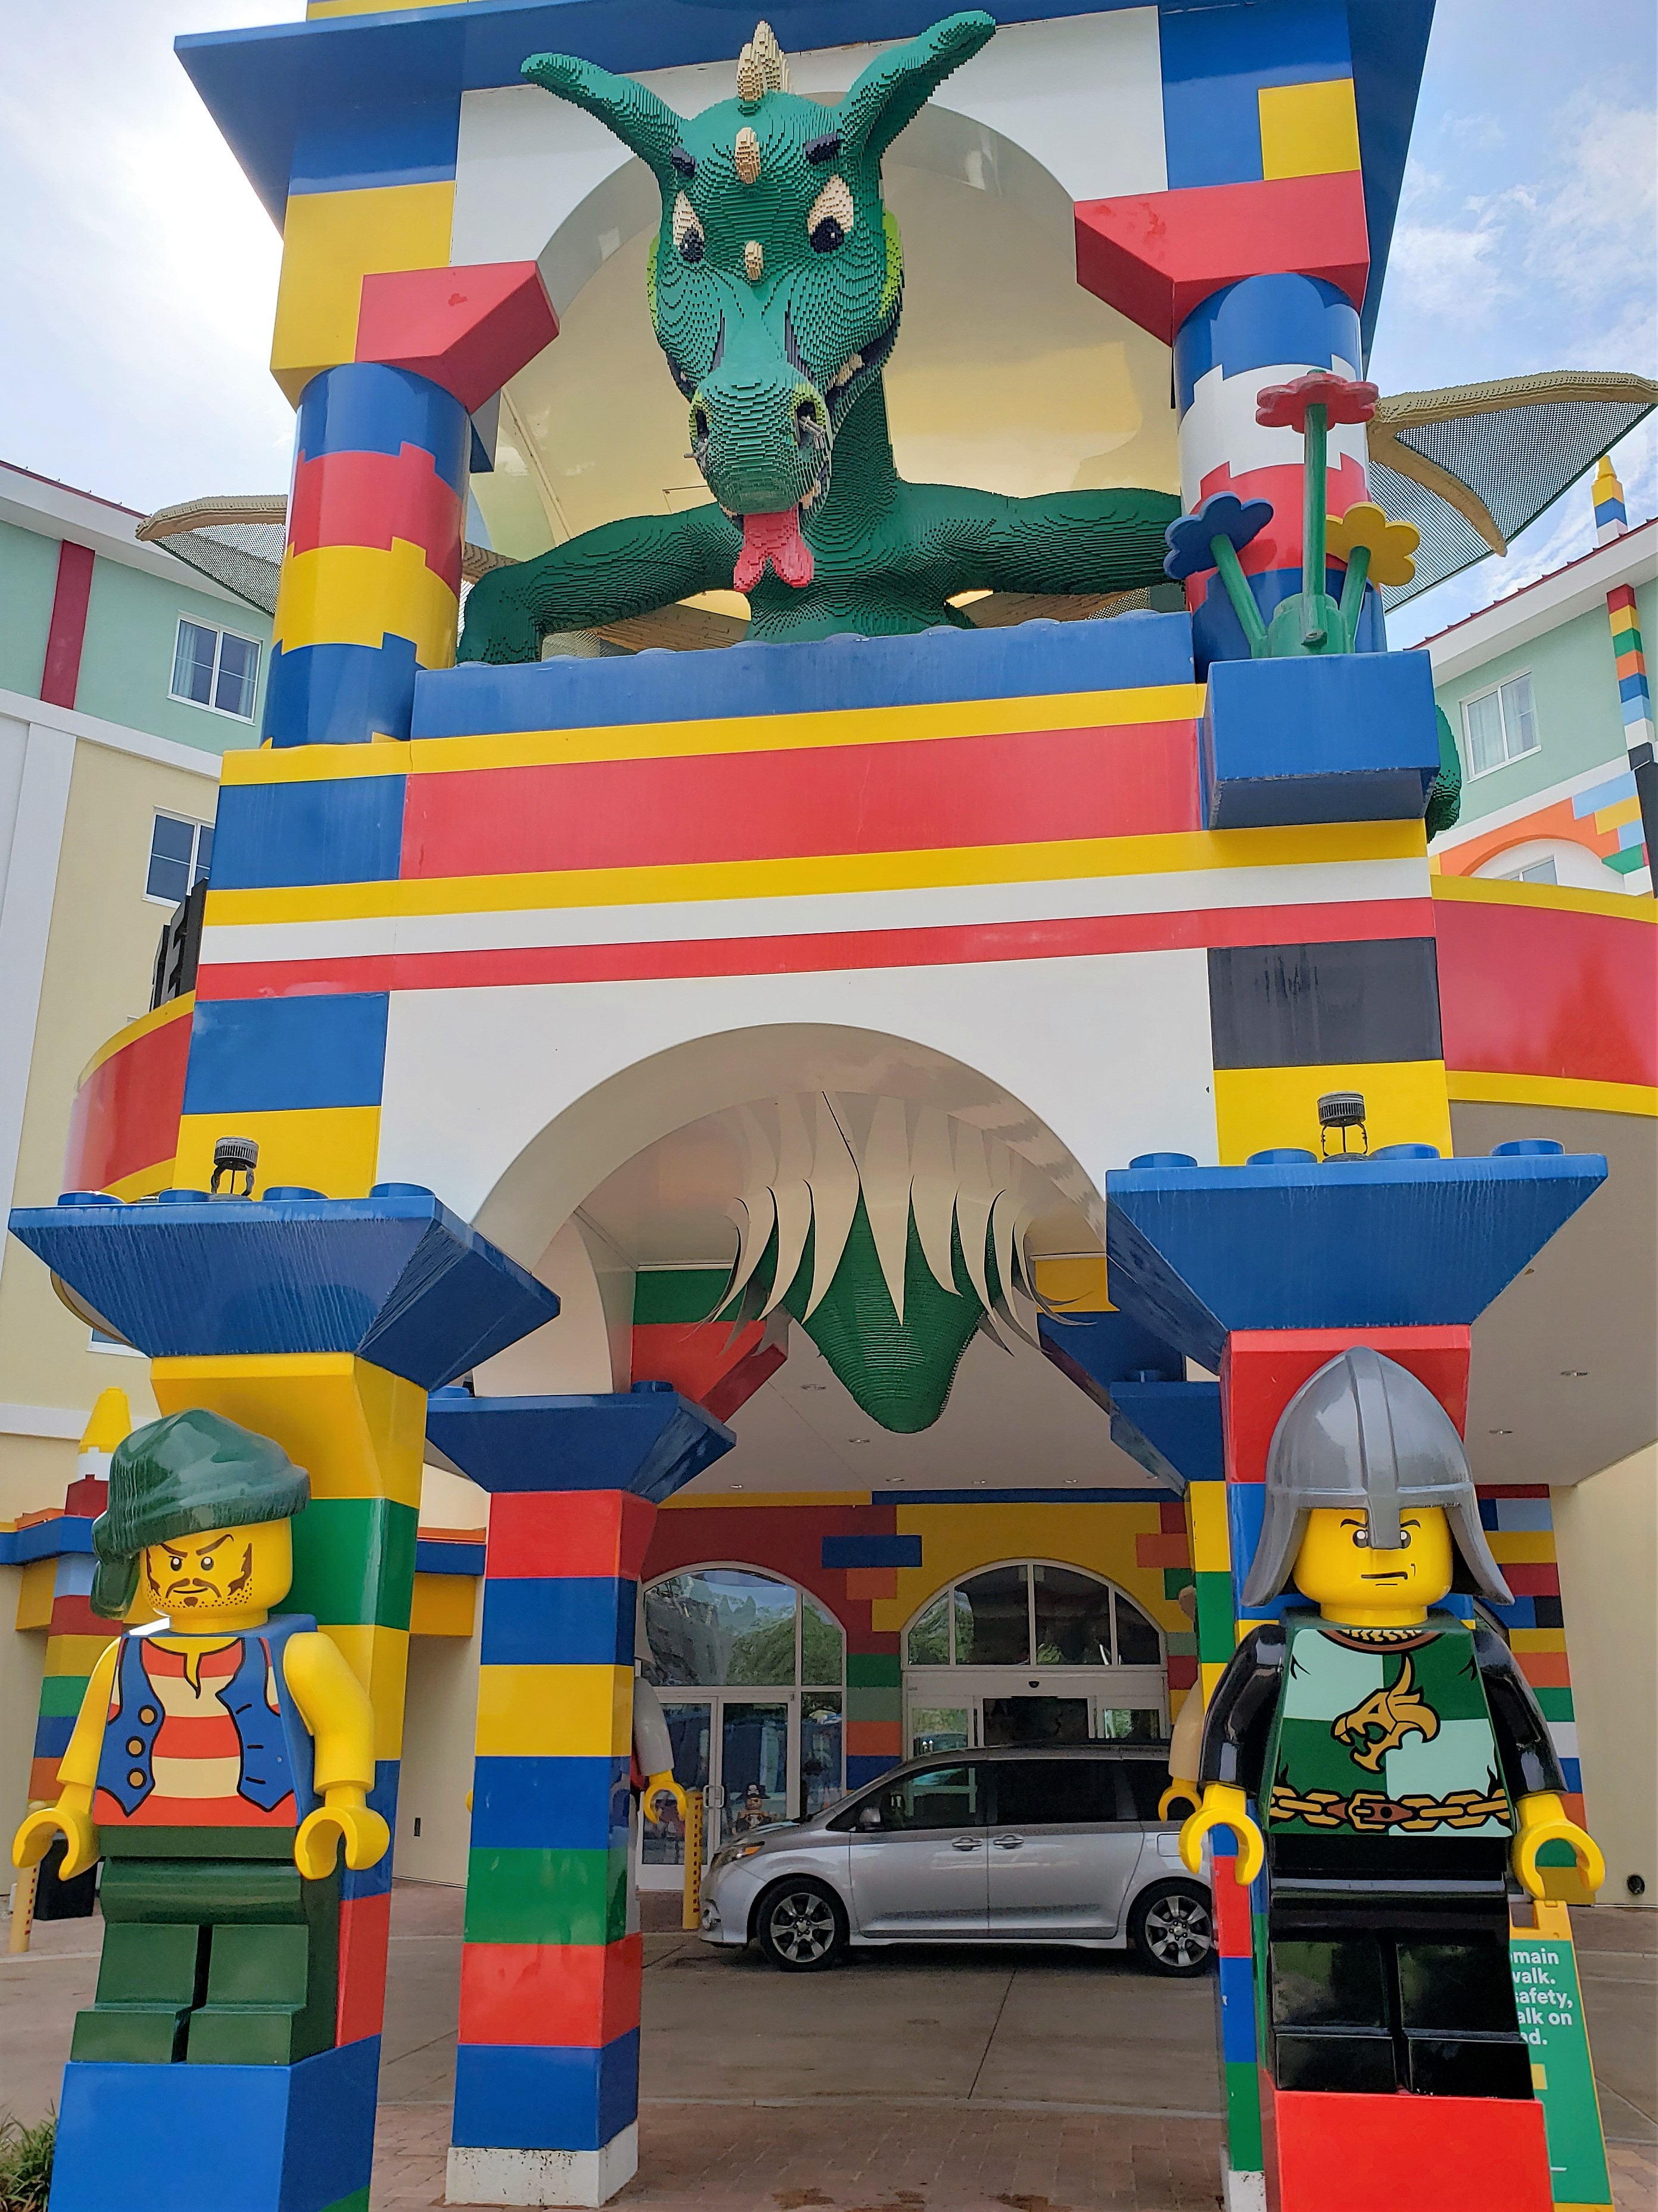 Lego Land – The Good, The Bad, and The Ugly